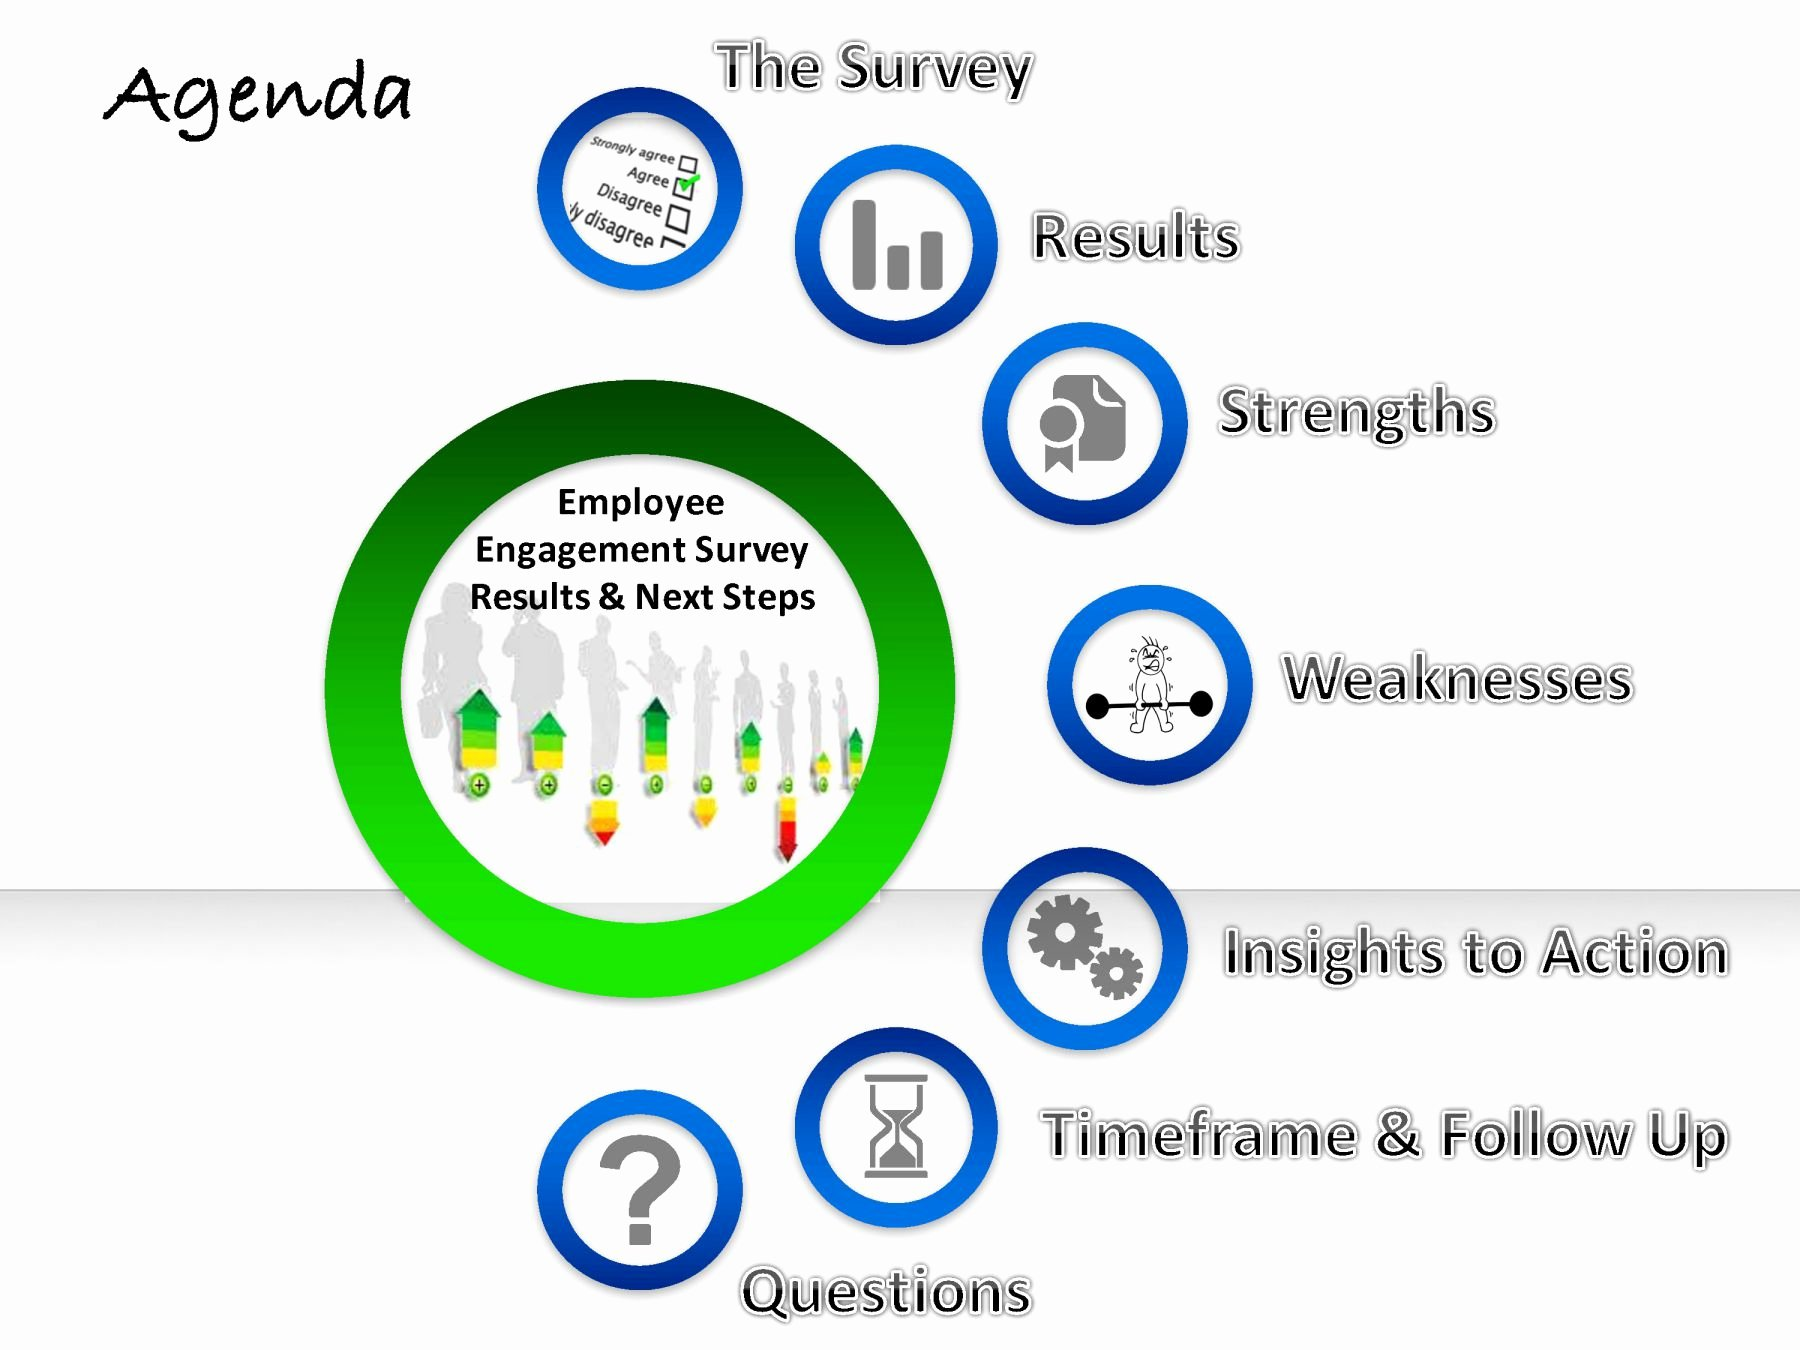 Employee Engagement Action Planning Template Inspirational Employee Engagement Survey Results & Next Steps